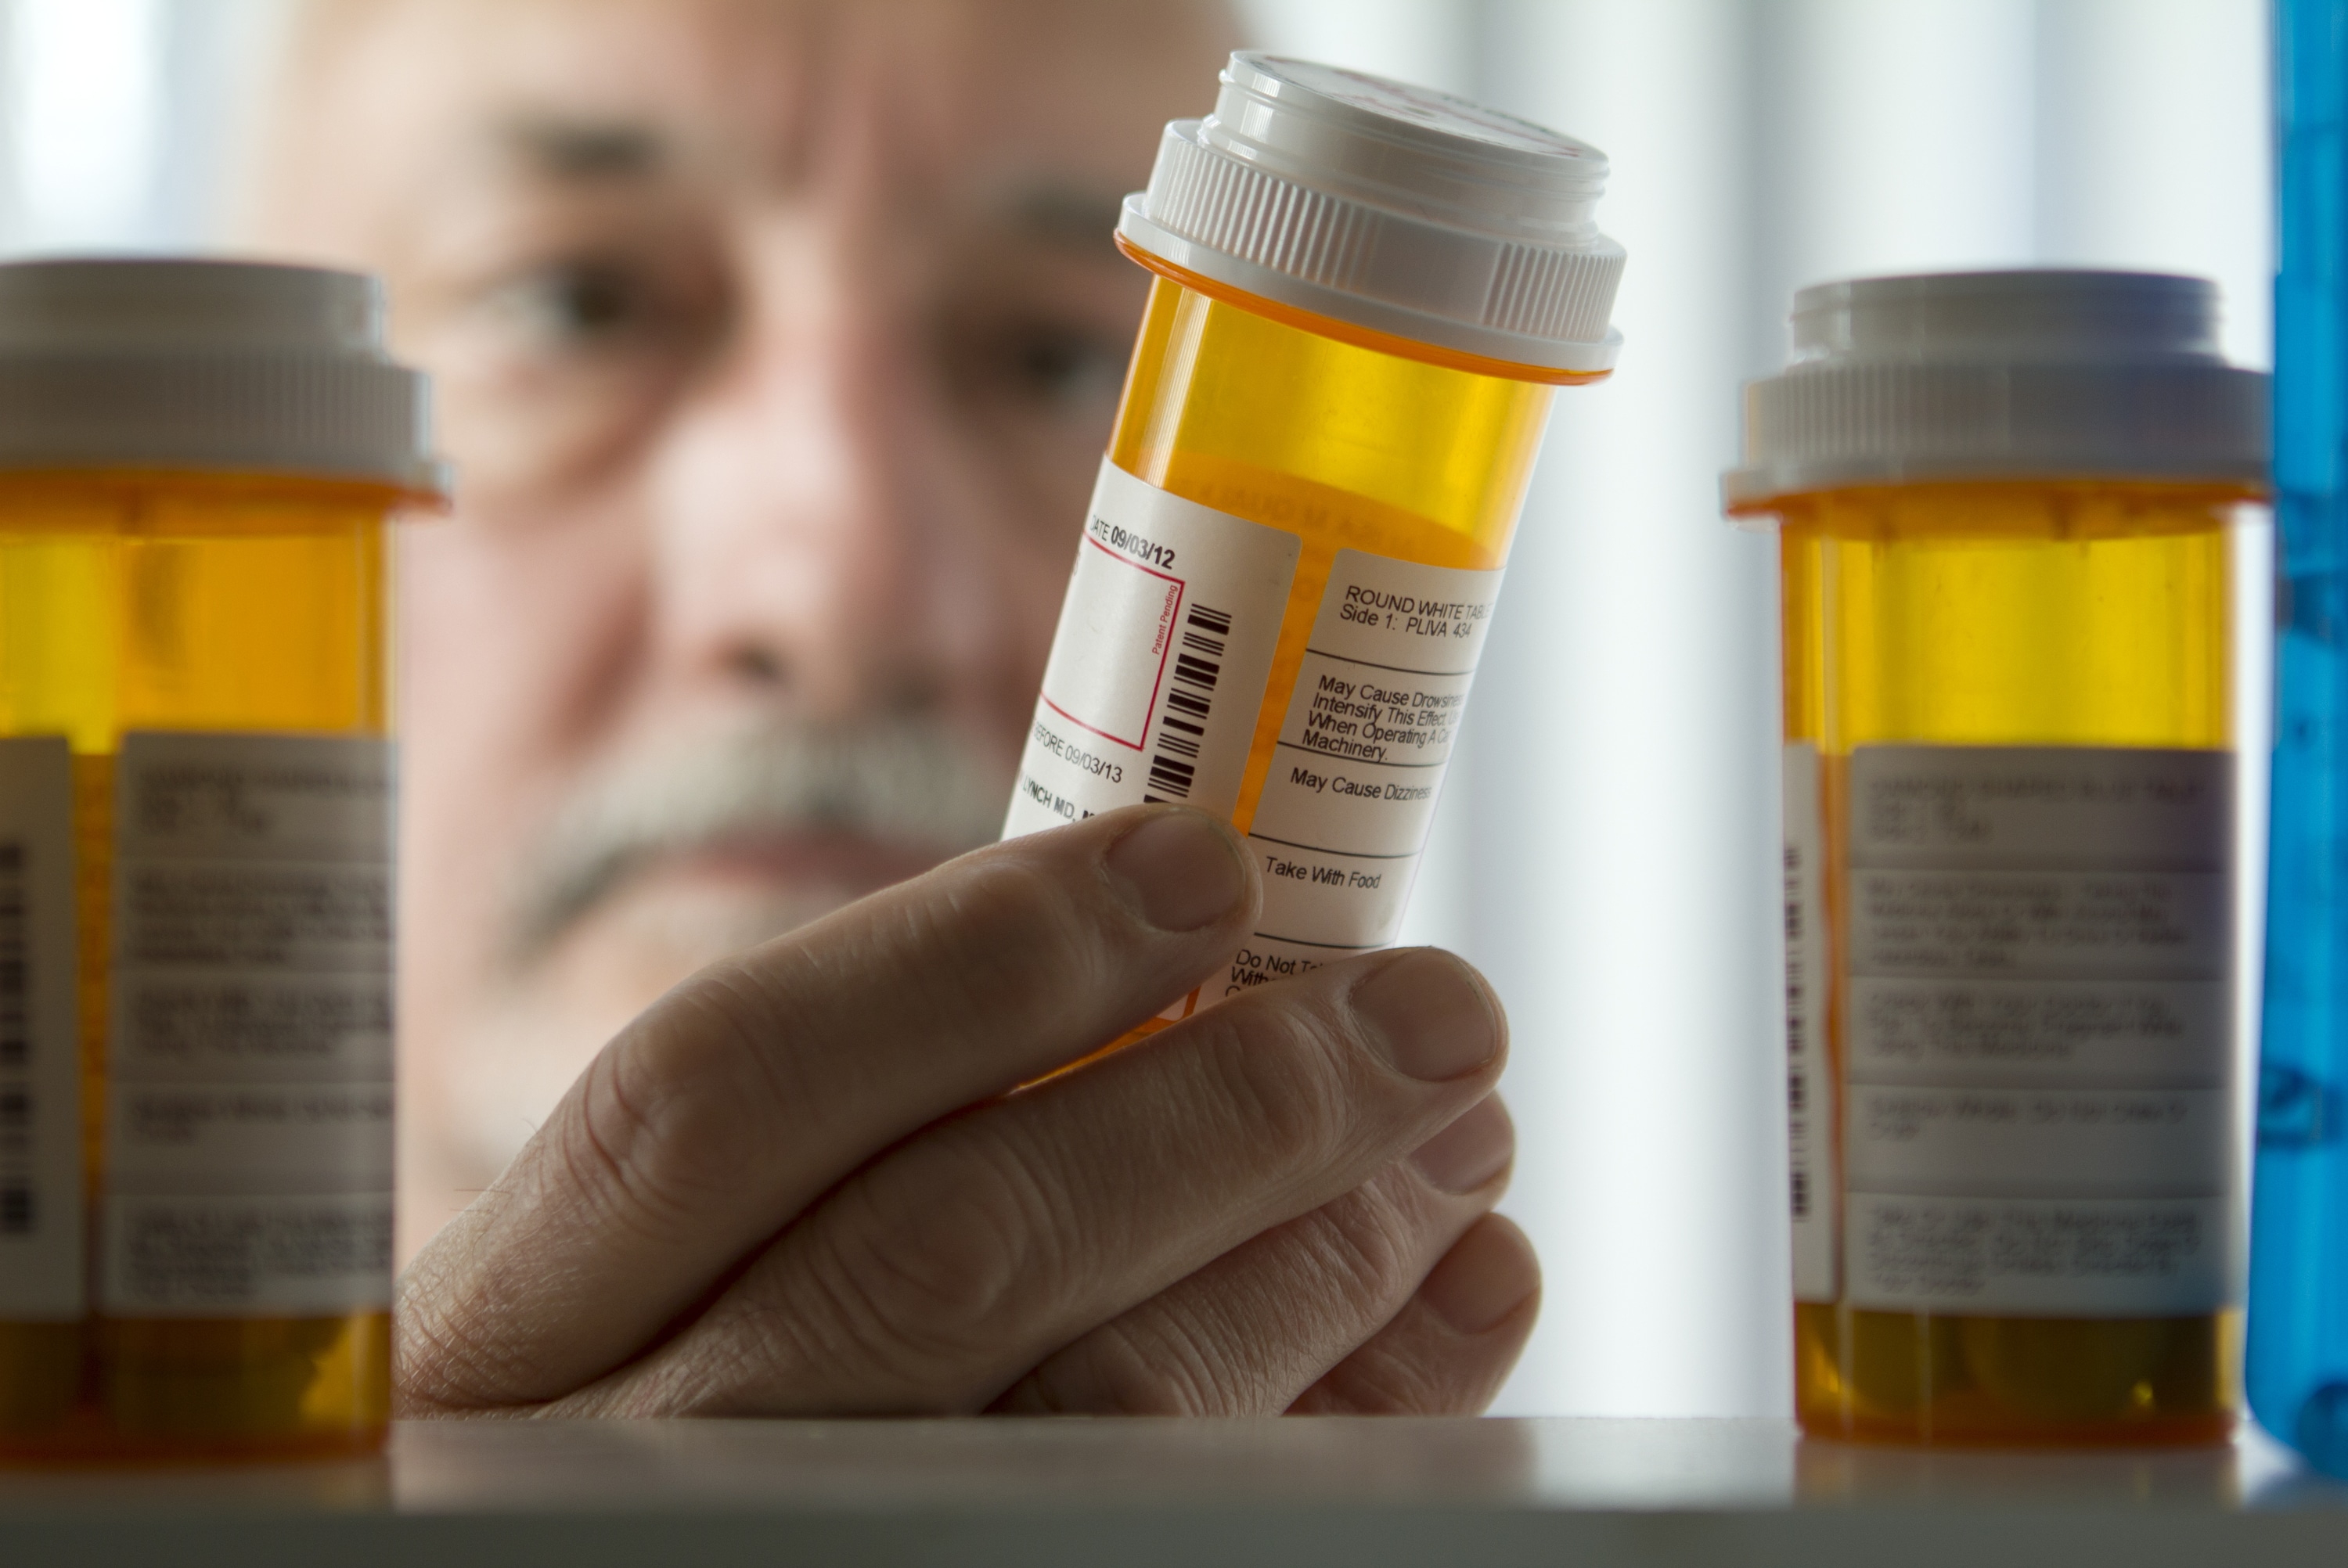 True Cost of the 10 Most-Prescribed Drugs - Why You May Not